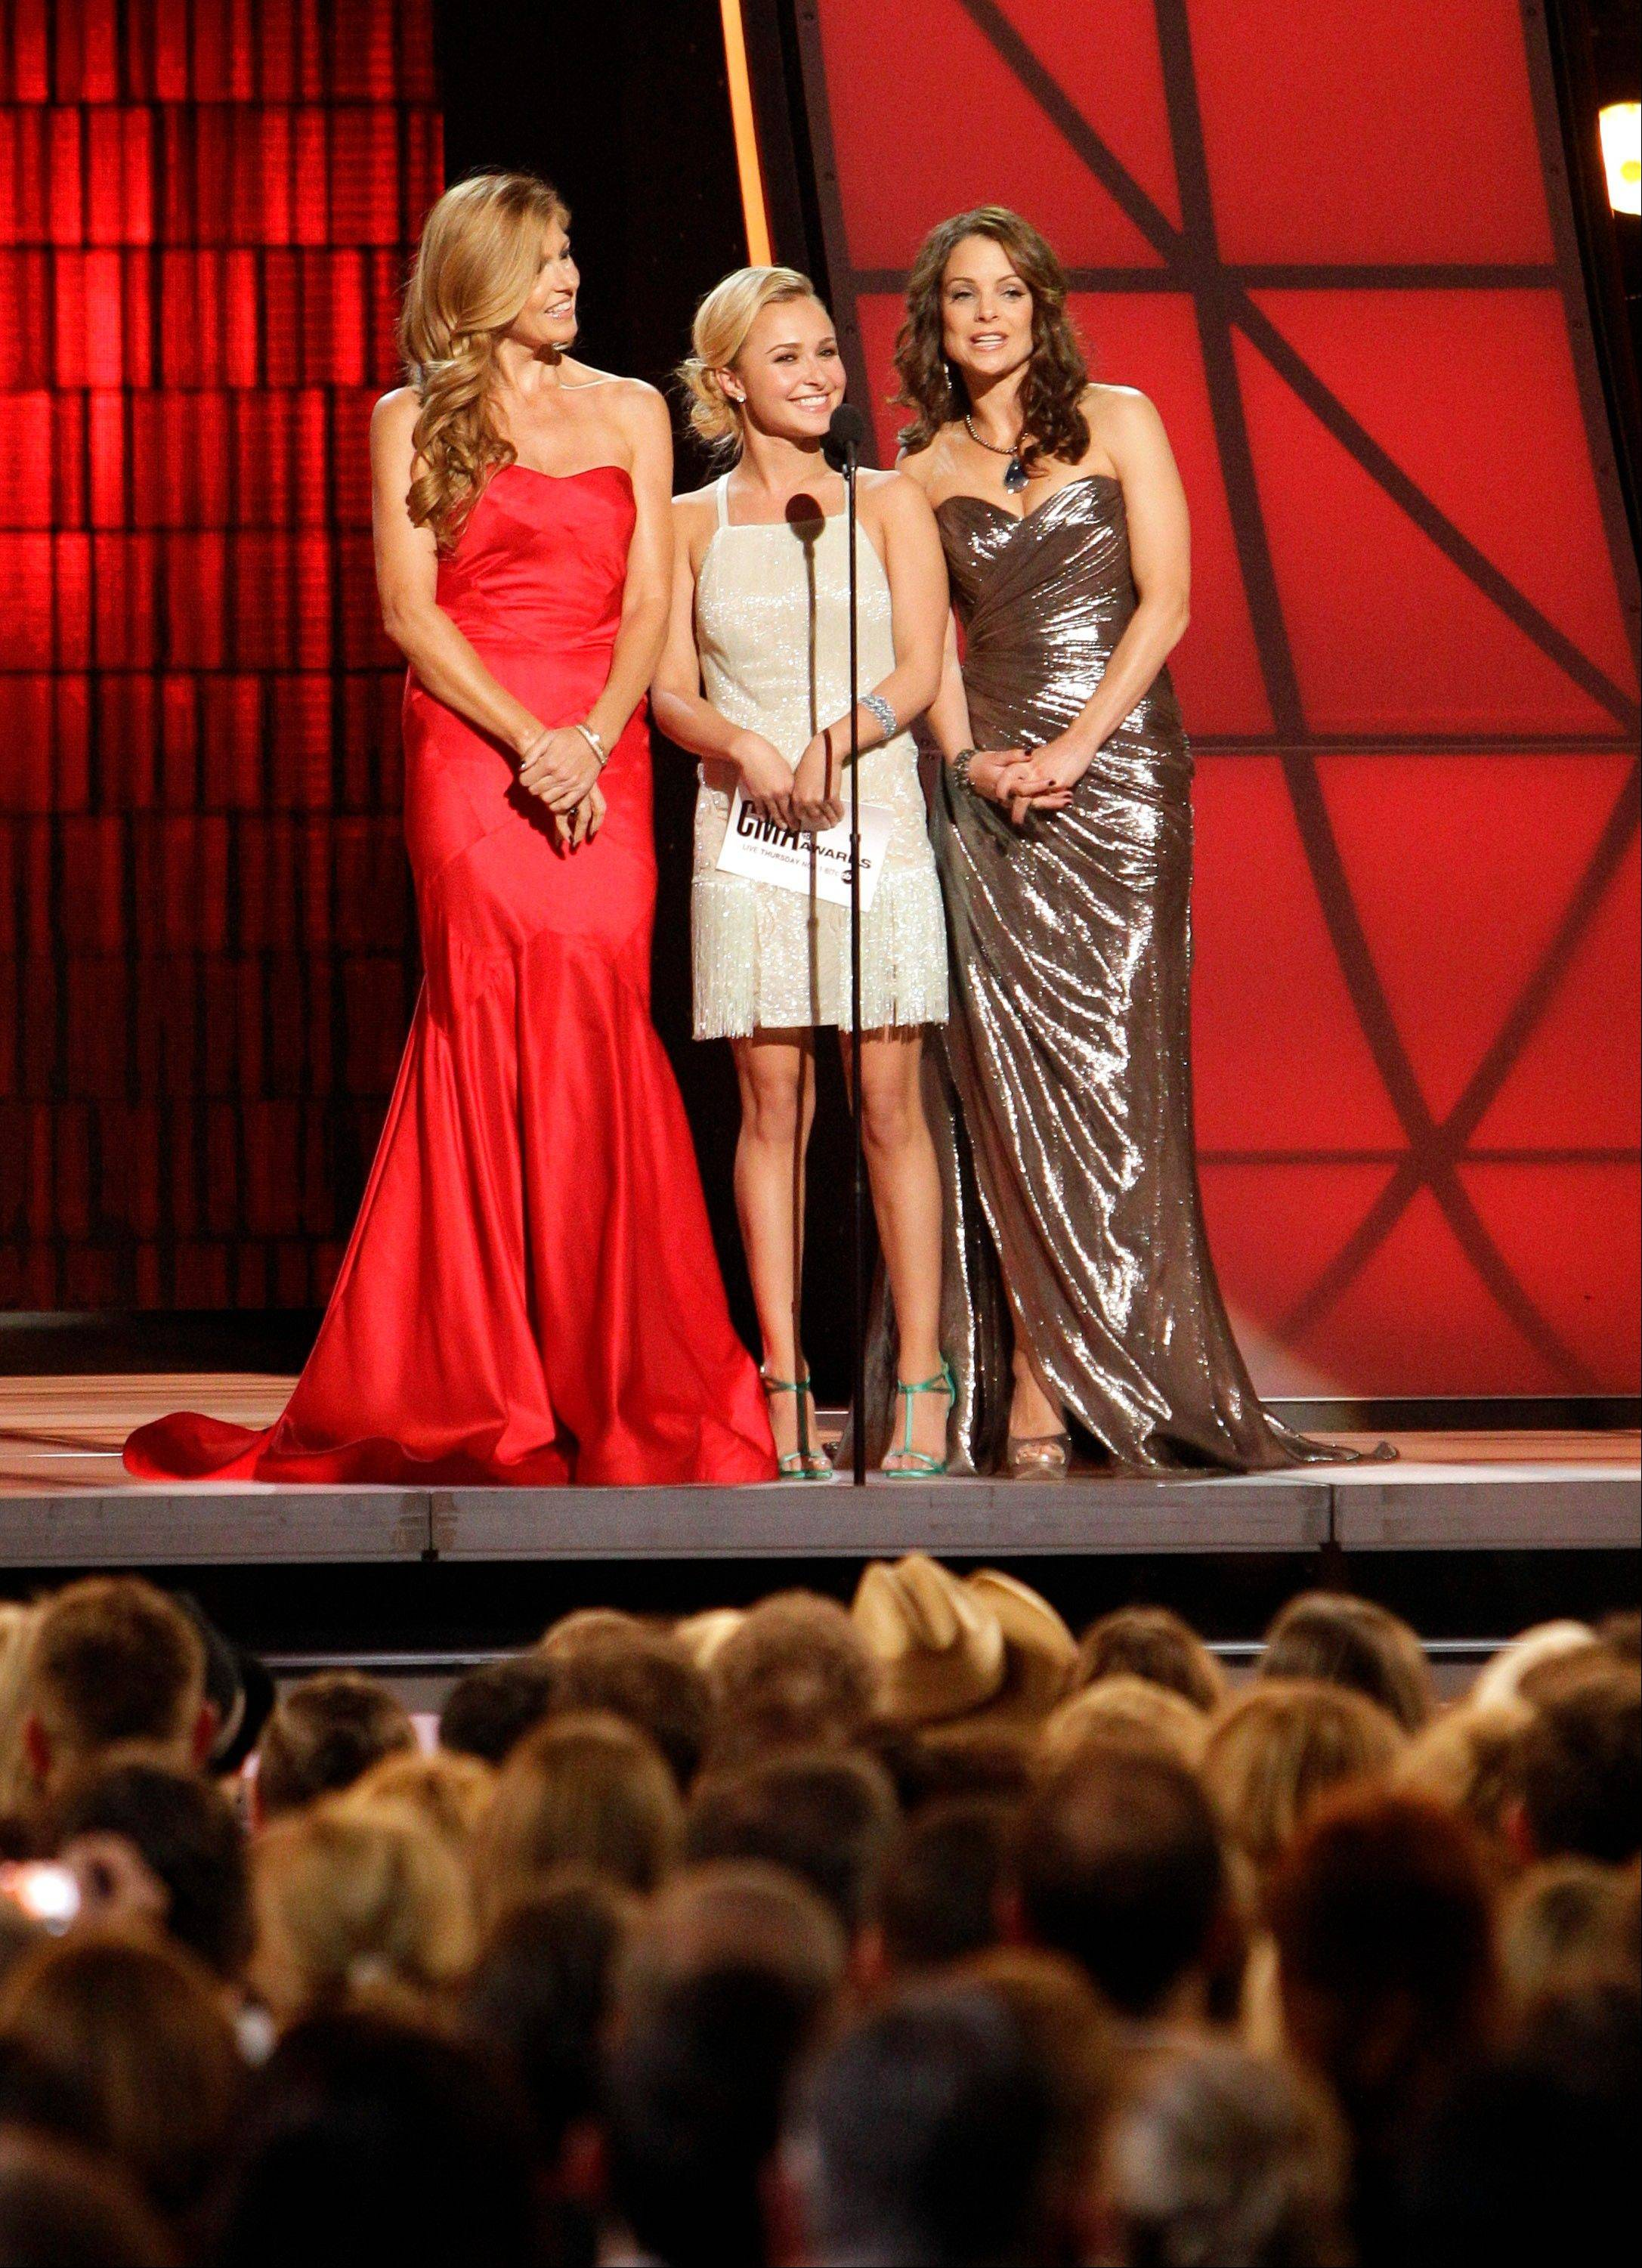 Connie Britton, from left, Hayden Panettiere and Kimberly Williams-Paisley present the award for female vocalist of the year at the 46th Annual Country Music Awards at the Bridgestone Arena on Thursday, Nov. 1, 2012, in Nashville, Tenn.